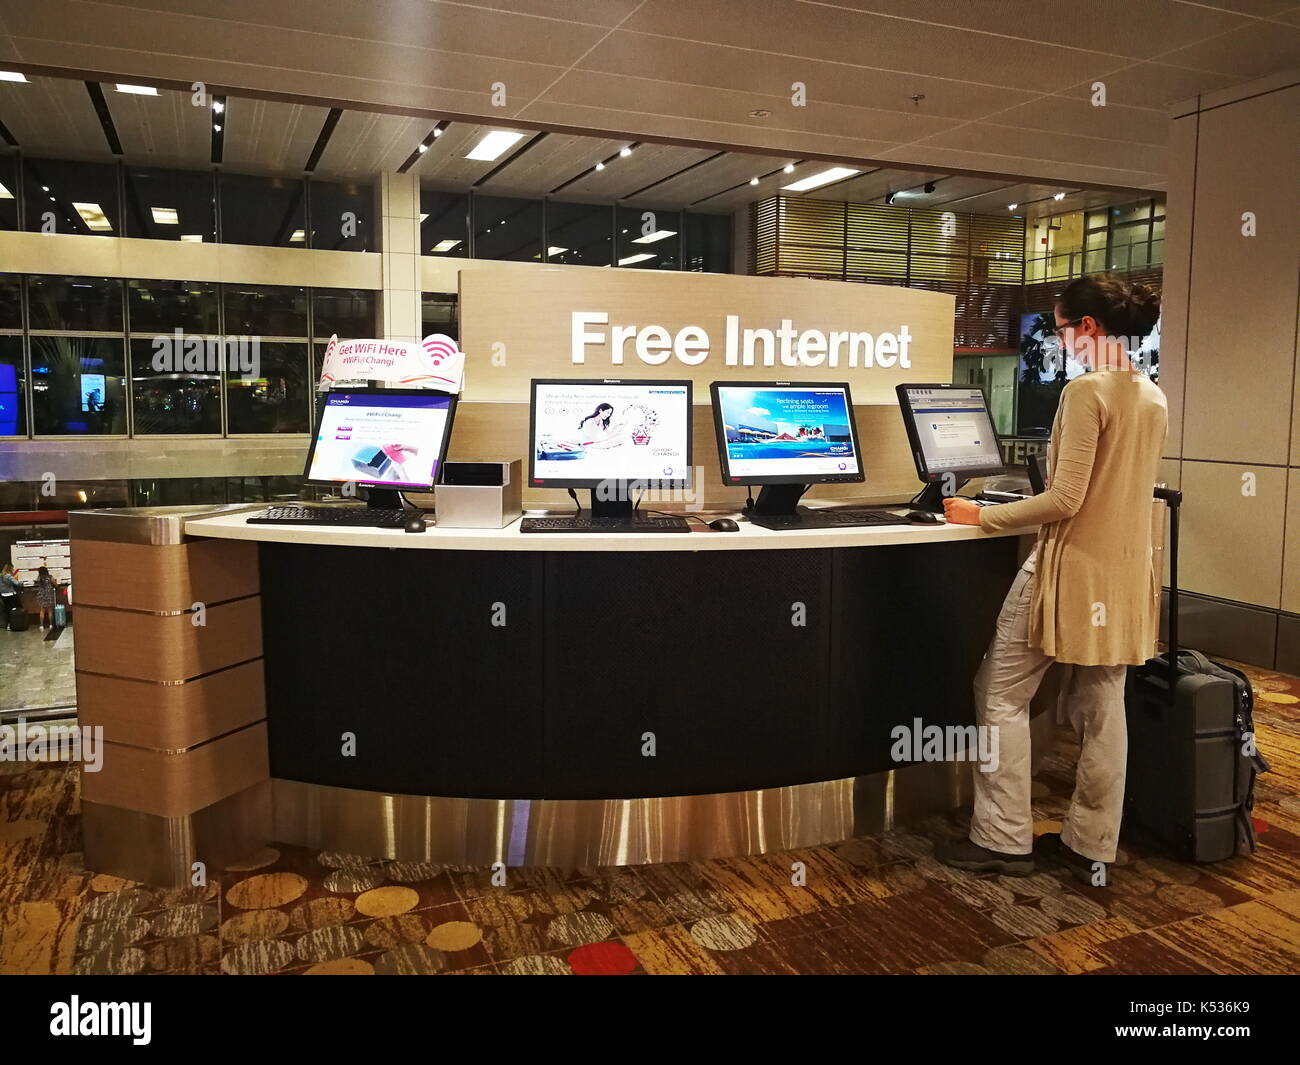 Free internet terminals available for use by waiting or transiting